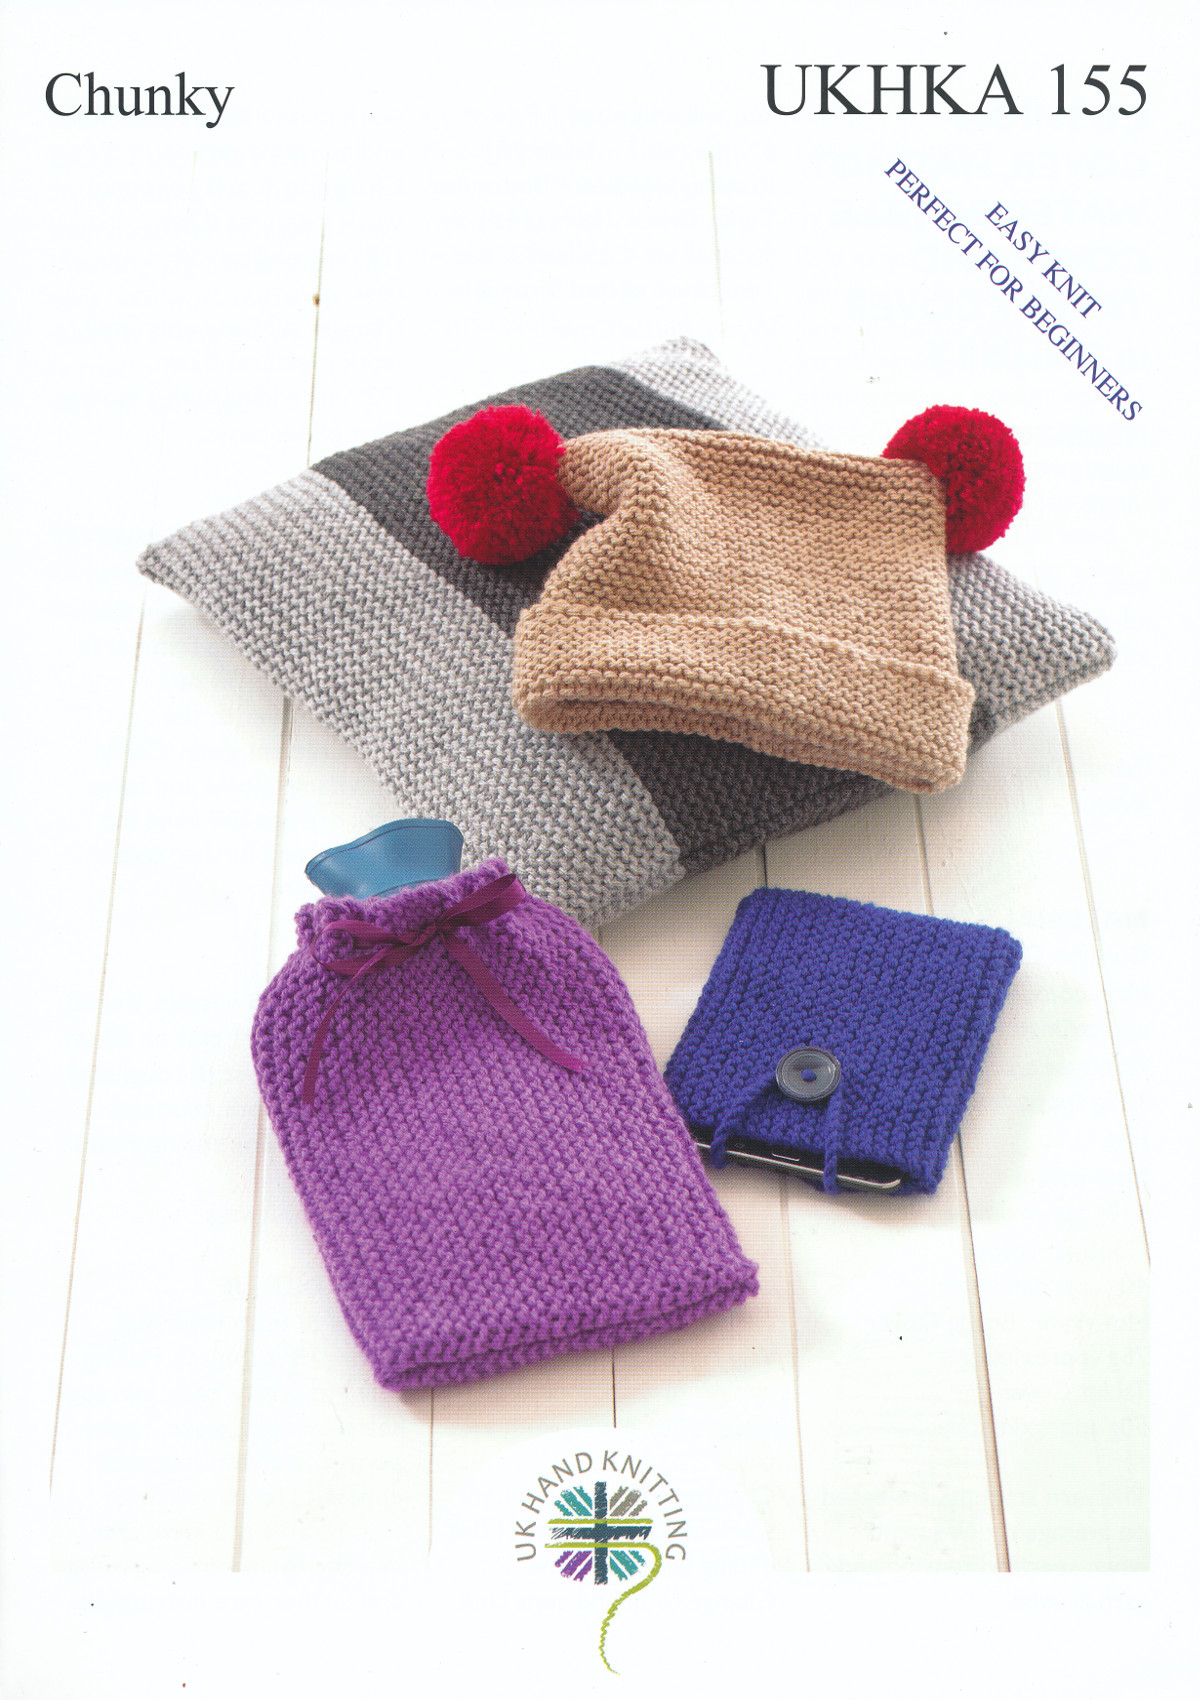 Free Cushion Cover Knitting Pattern Details About Chunky Knitting Pattern Hat Cushion Hot Water Bottle Tablet Covers Ukhka 155